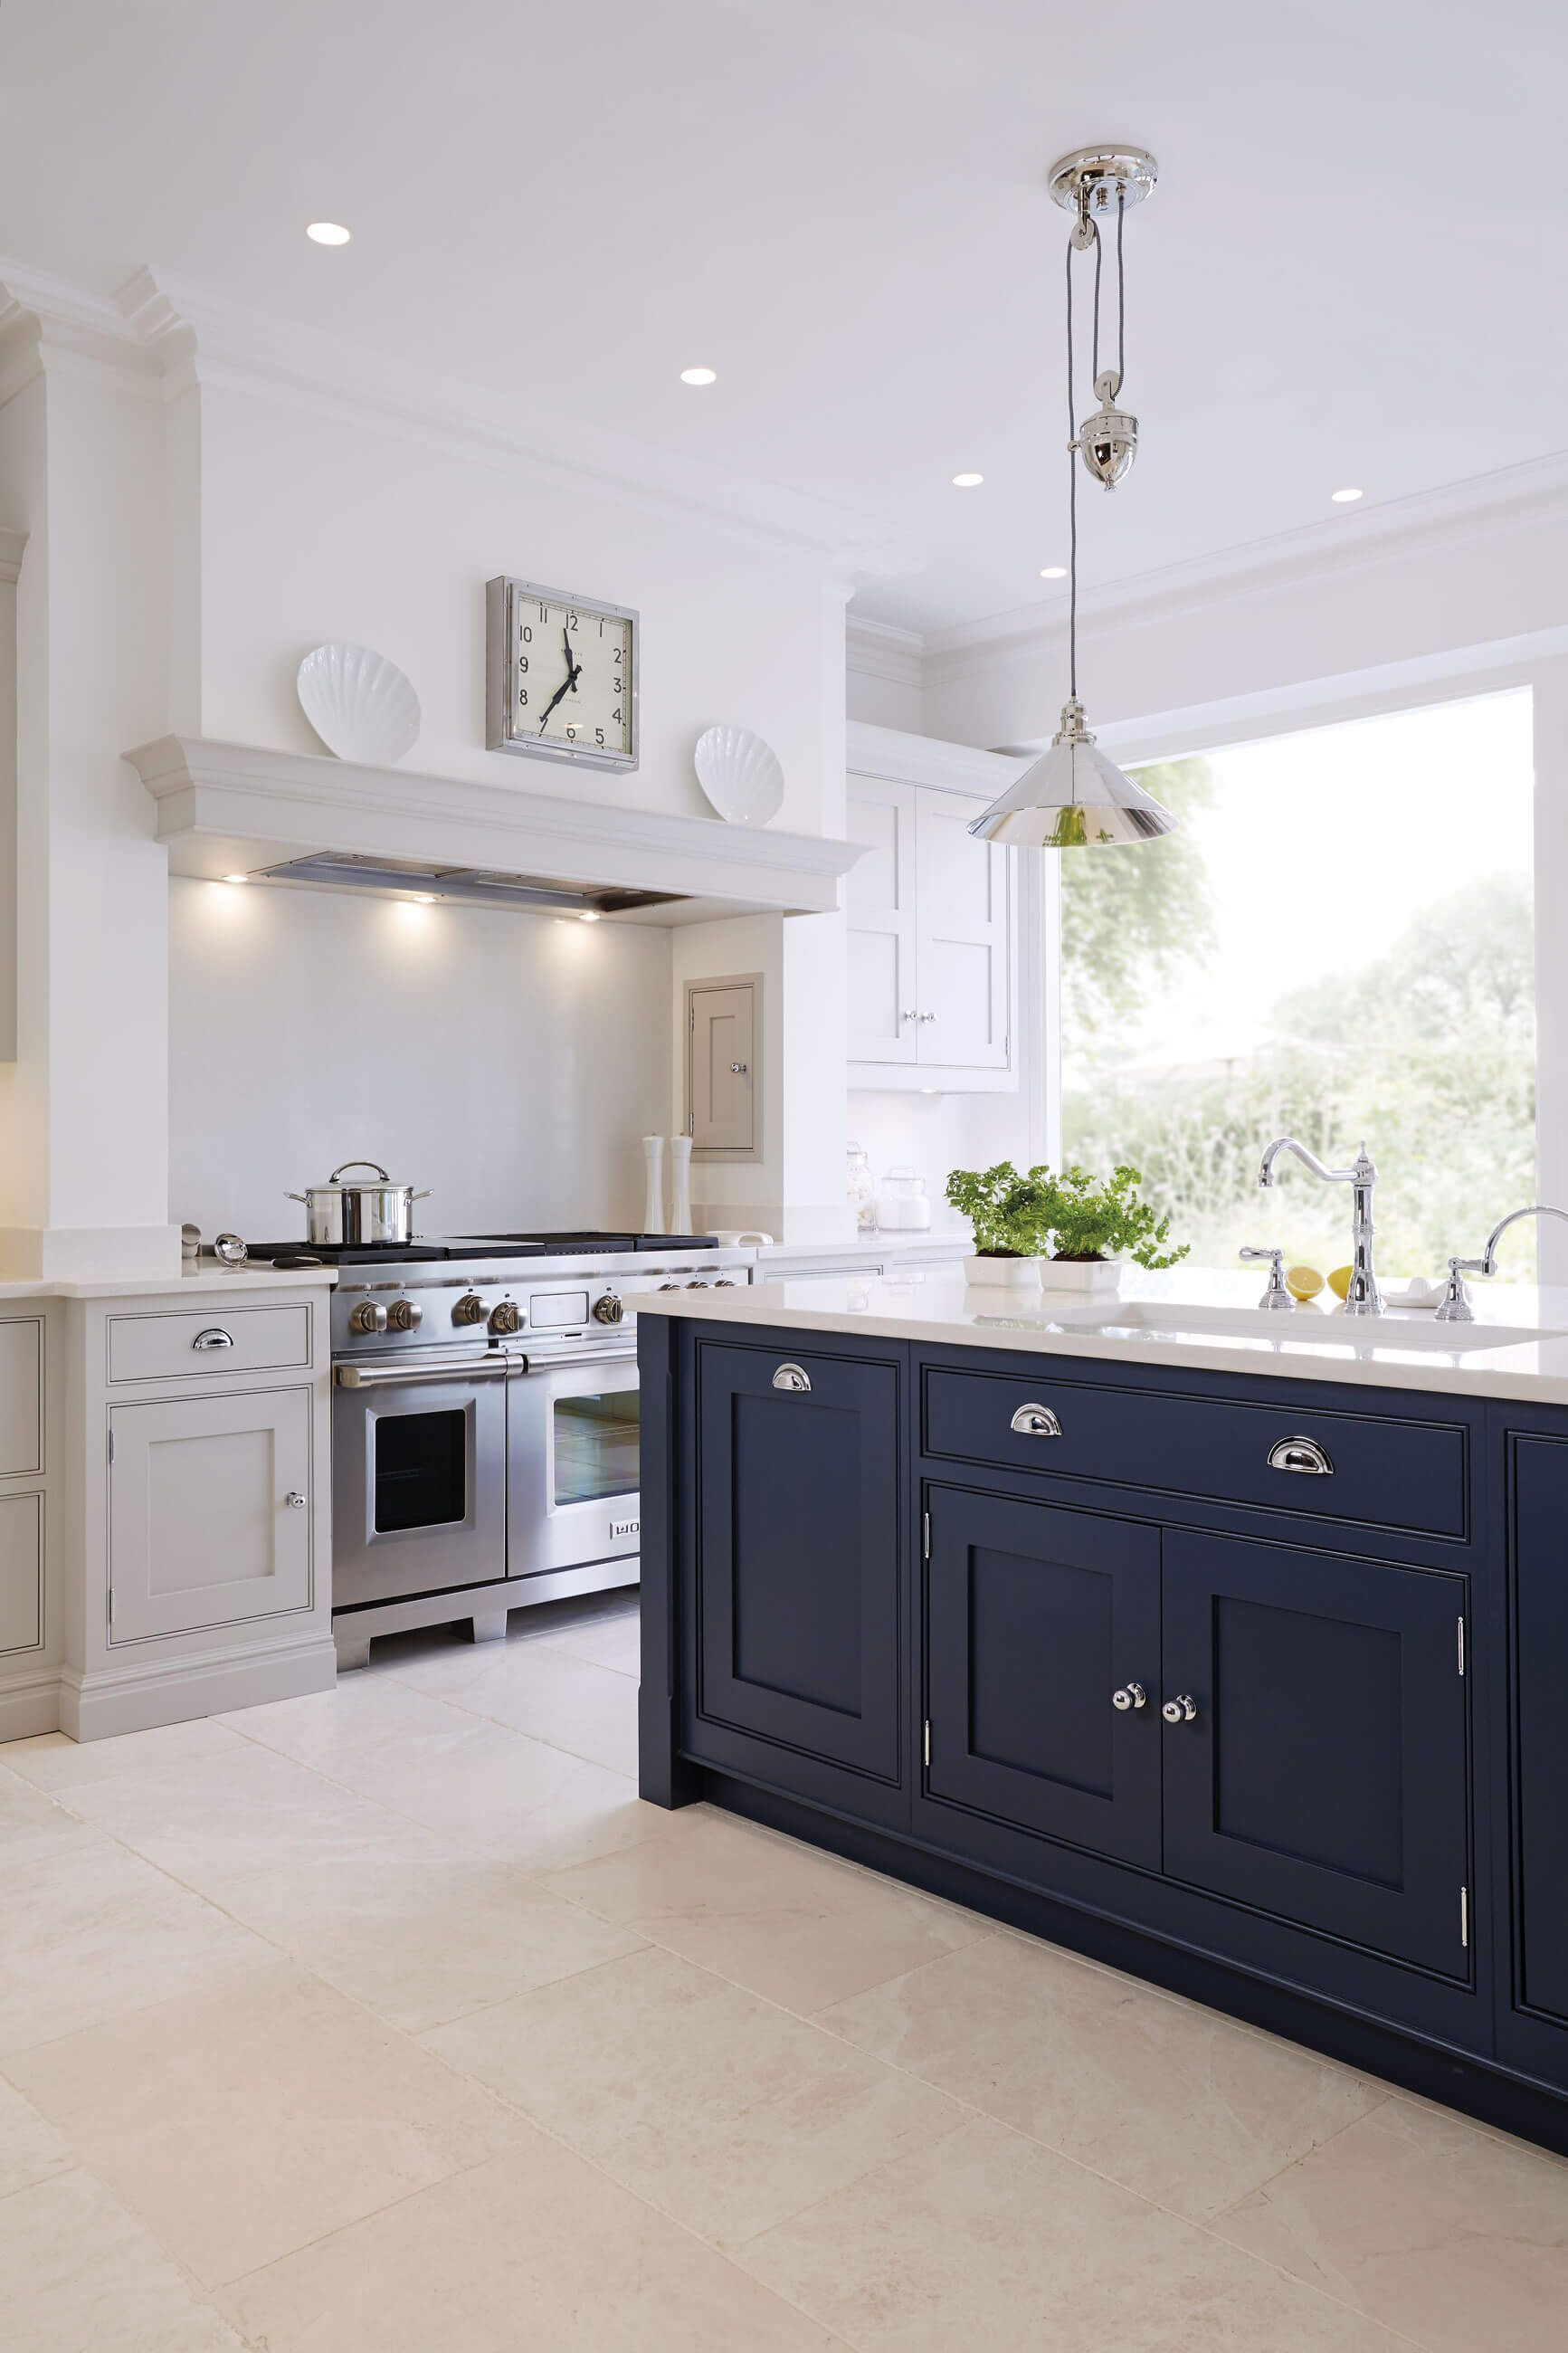 Küchenideen bauernhaus luxury blue painted kitchen with feature island with full length